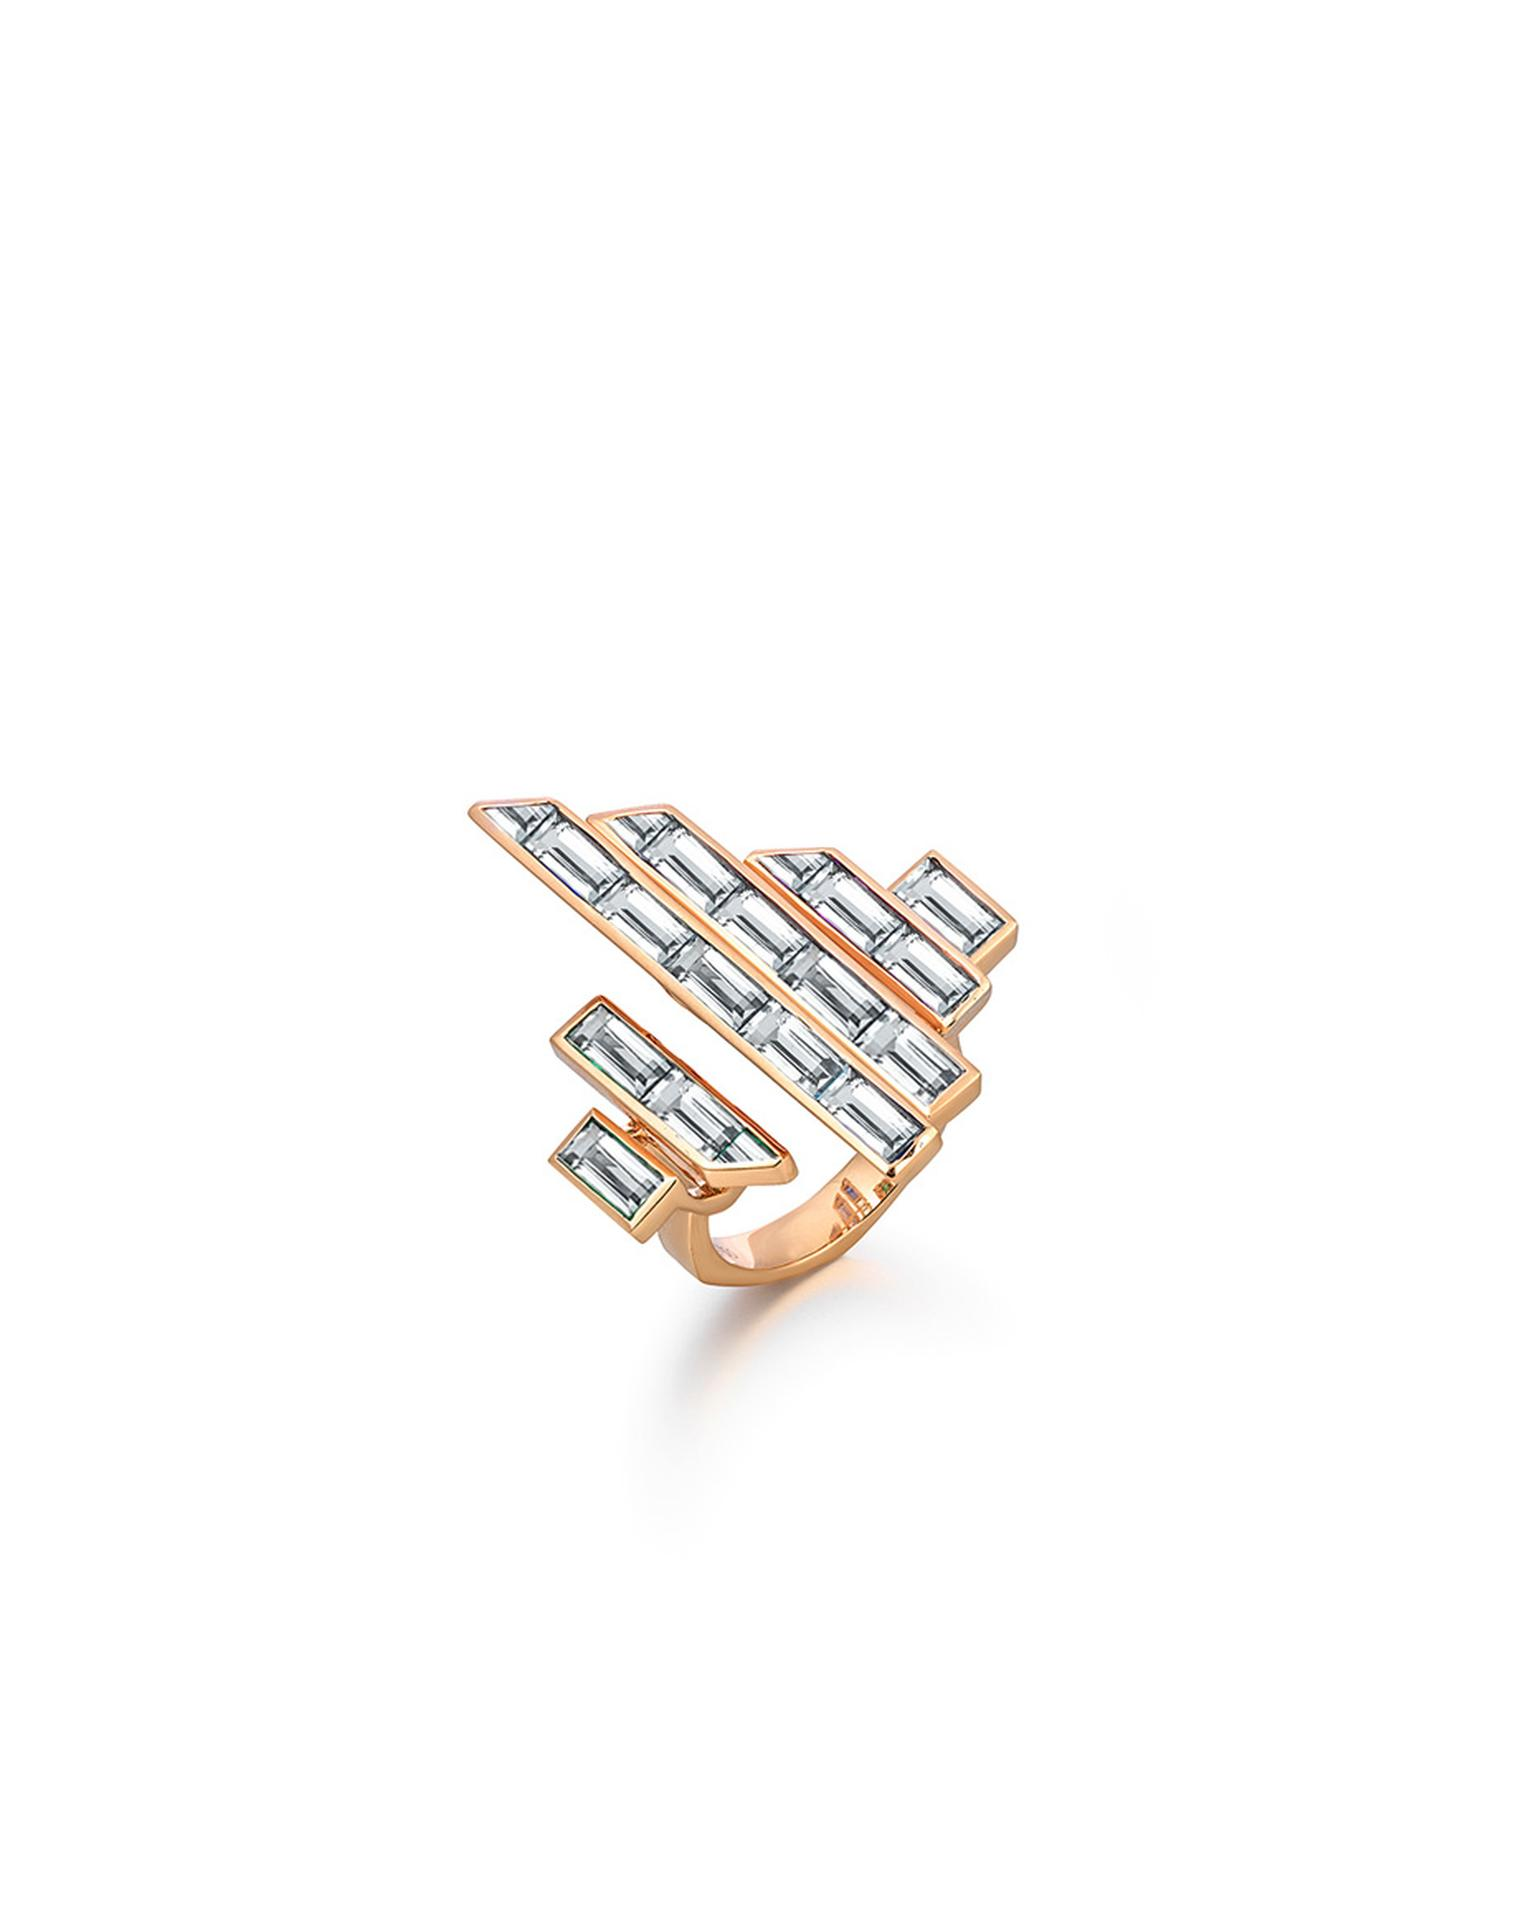 Tomasz Donocik diamond cocktail ring in rose gold from the Electric Night collection.